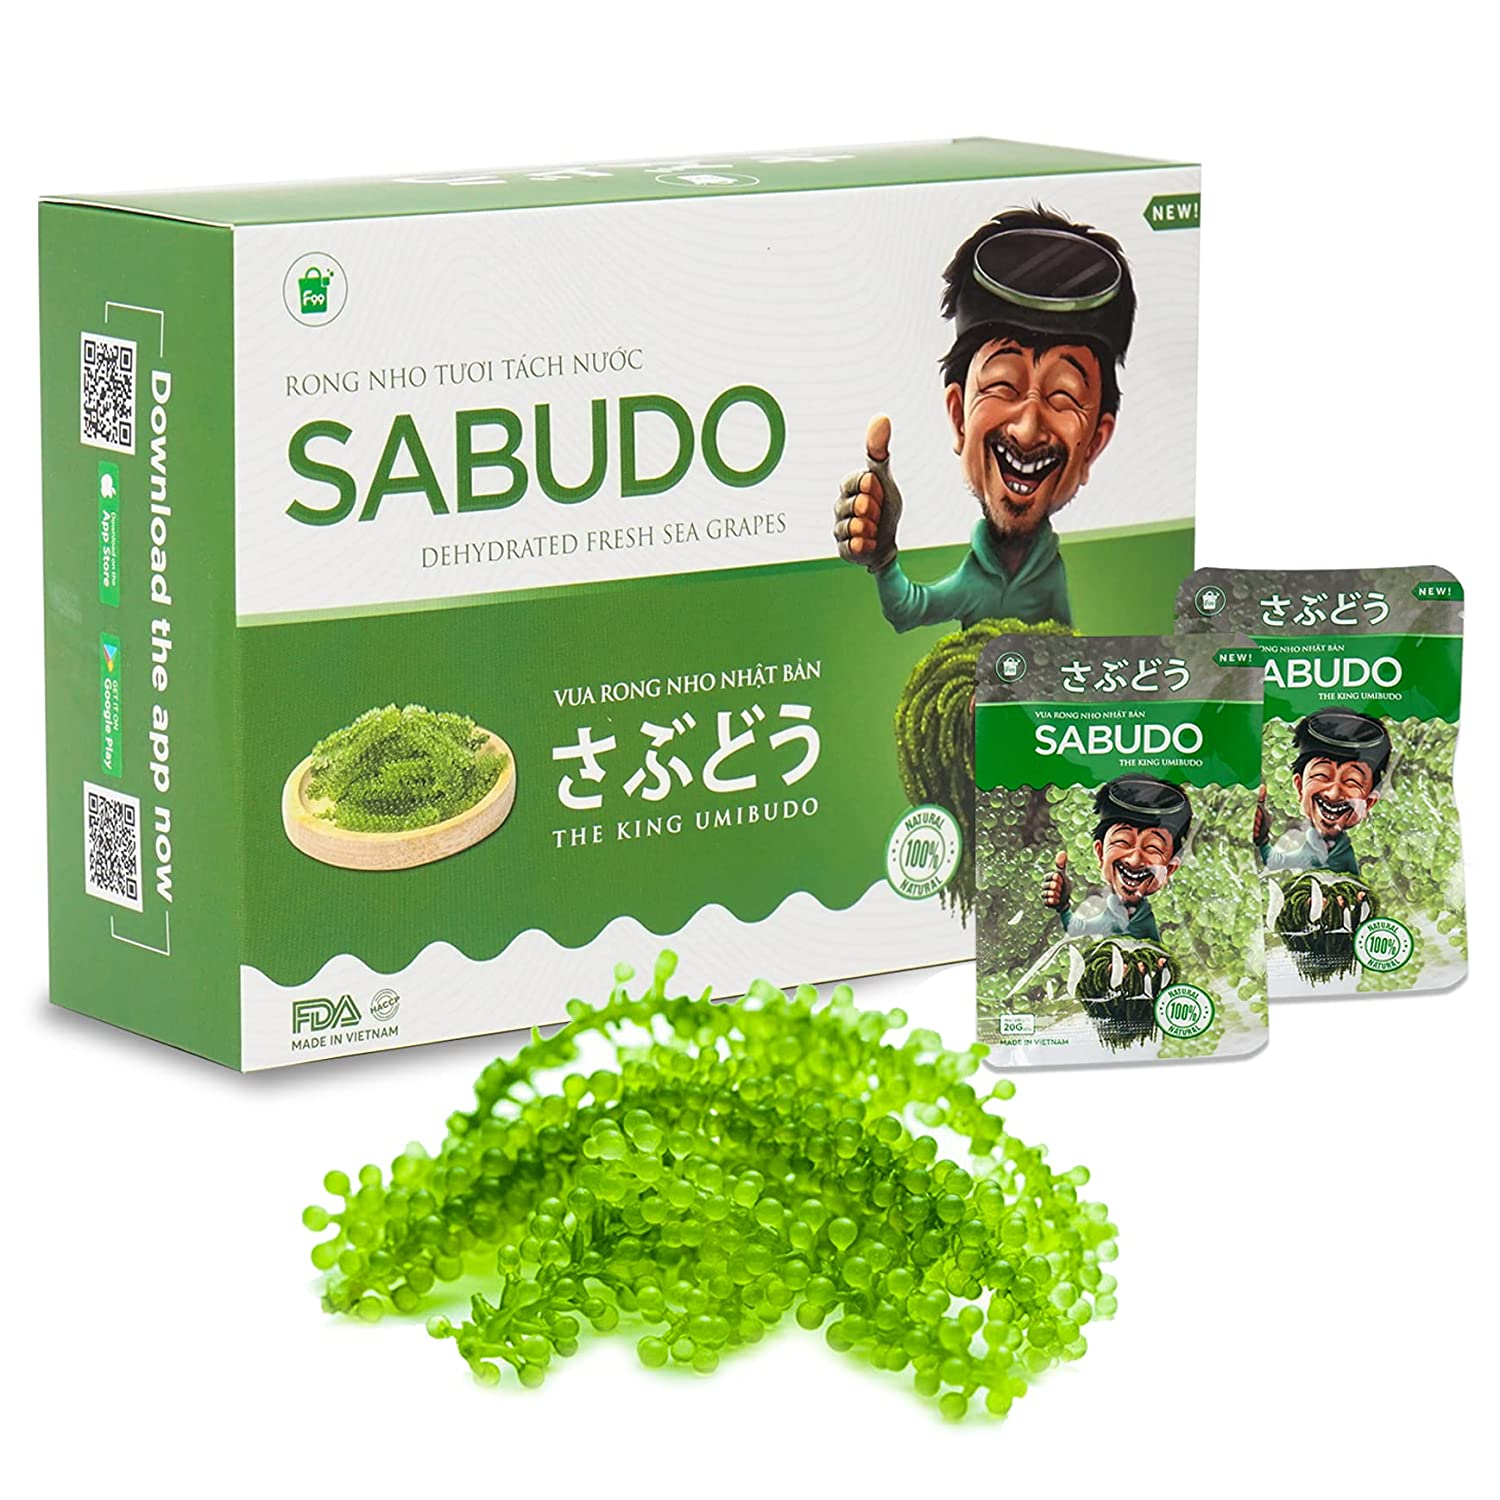 Sabudo Sea Grapes, King Umibudo, Dehydrated Lato Seaweed, Green Caviar, Superfood - The Pearl Of The See (0.7 oz x 4 packs)(Pack of 4)